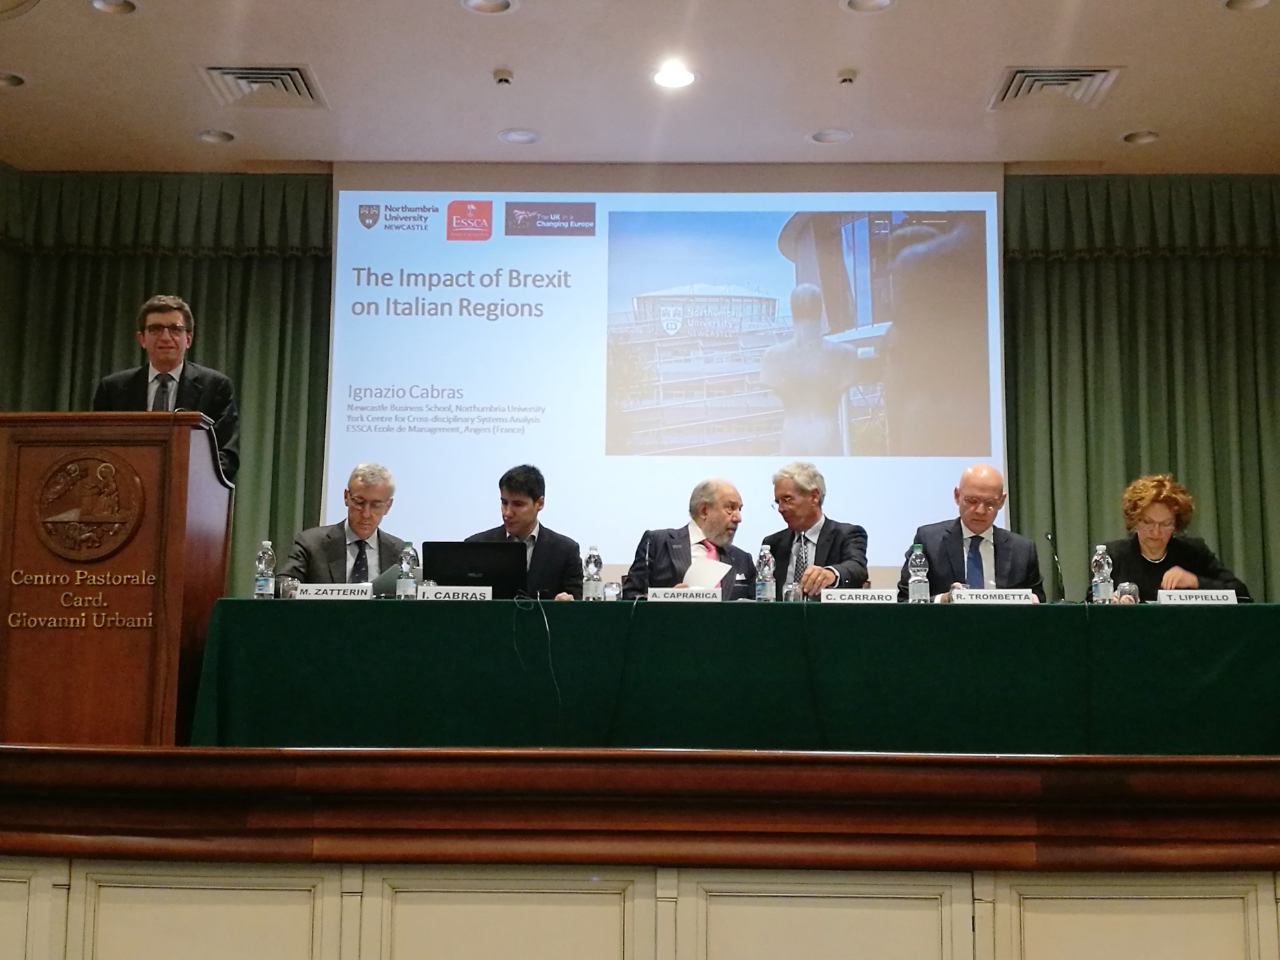 Speaking in Venice (third from left) Professor Ignazio Cabras, Faculty Director for International Research Partnerships at Newcastle Business School, Northumbria University.